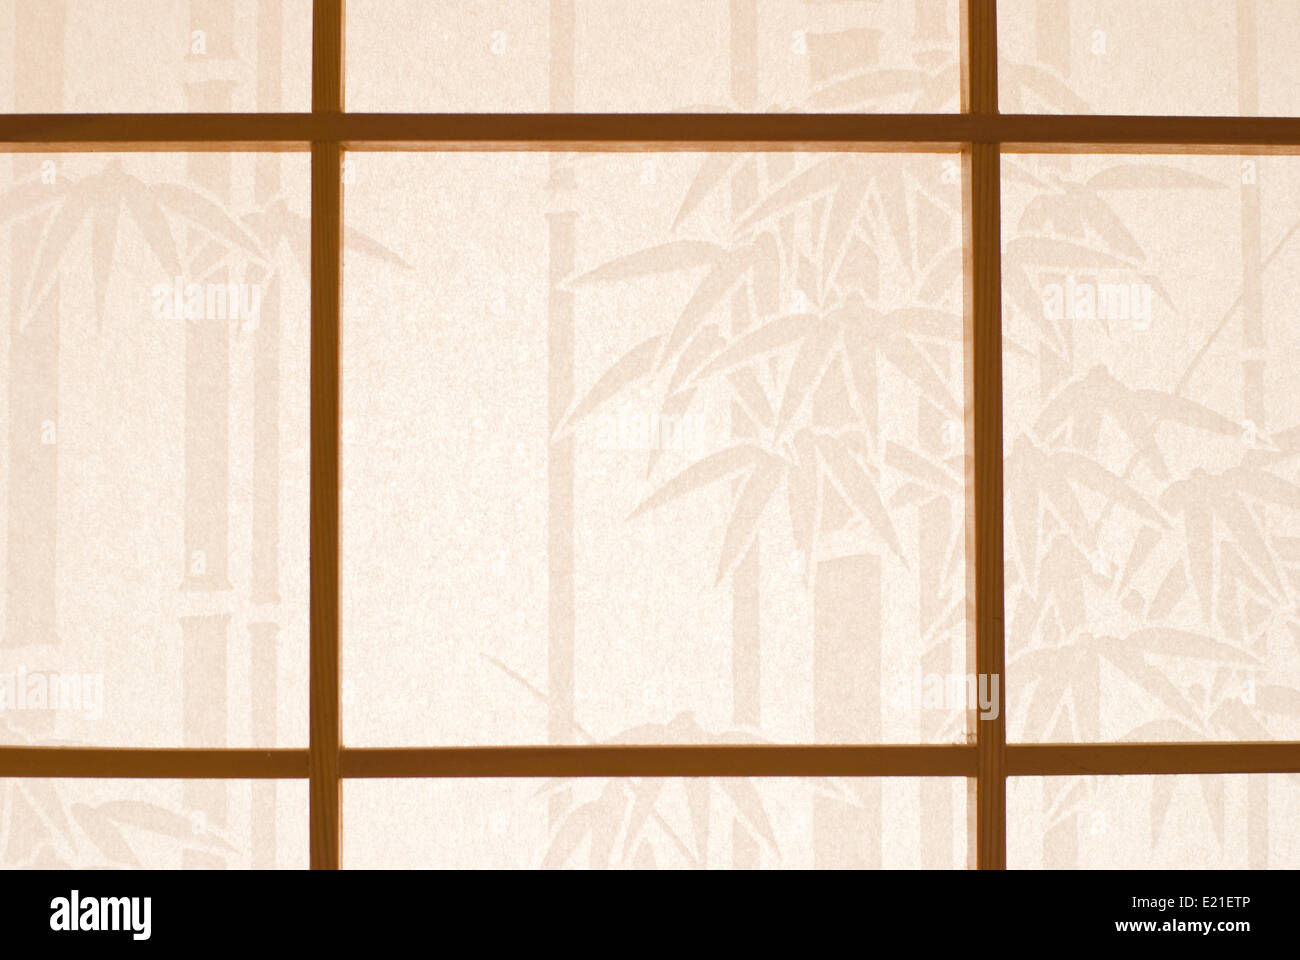 Japanese Antique Pattern Stock Photos & Japanese Antique